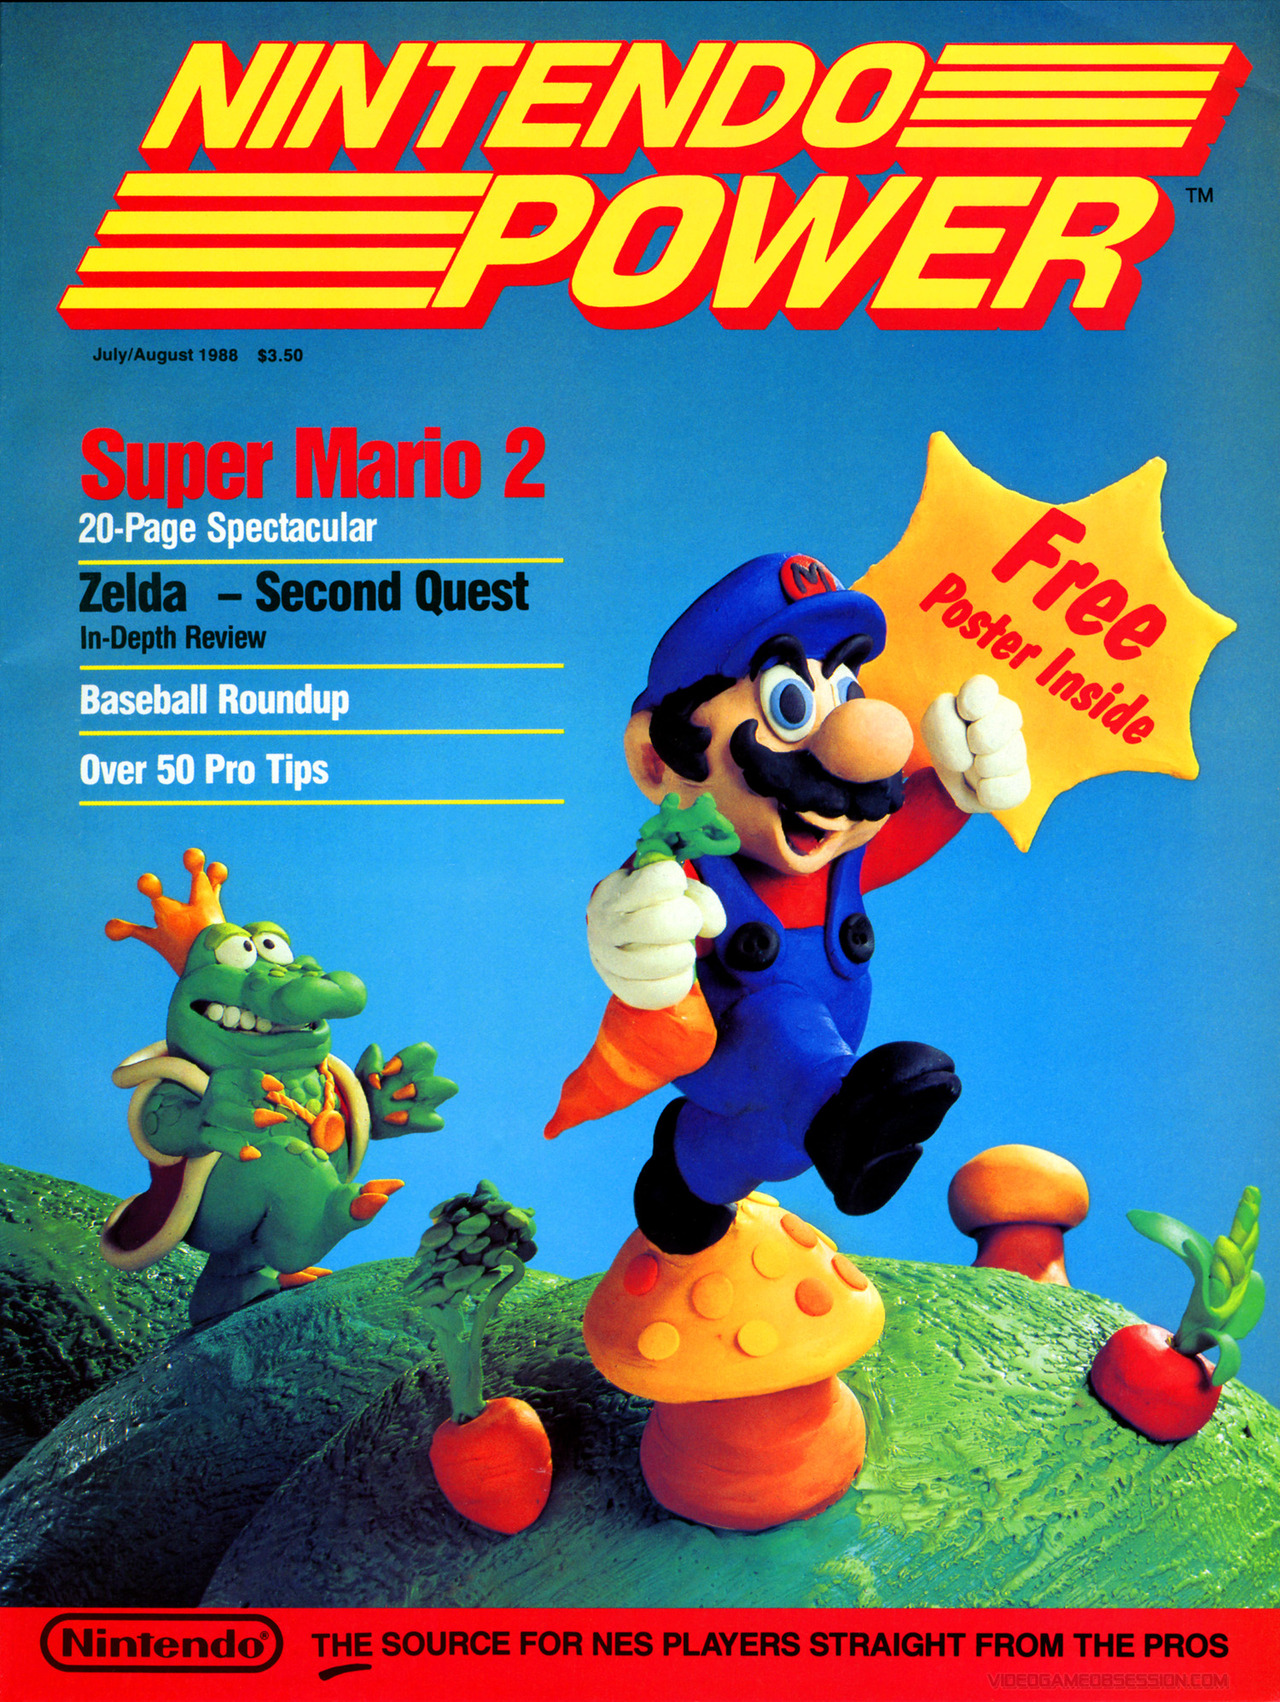 http://img3.wikia.nocookie.net/__cb20120909223212/nintendo/en/images/6/65/Nintendo_Power_Volume_1_-_Scan.png